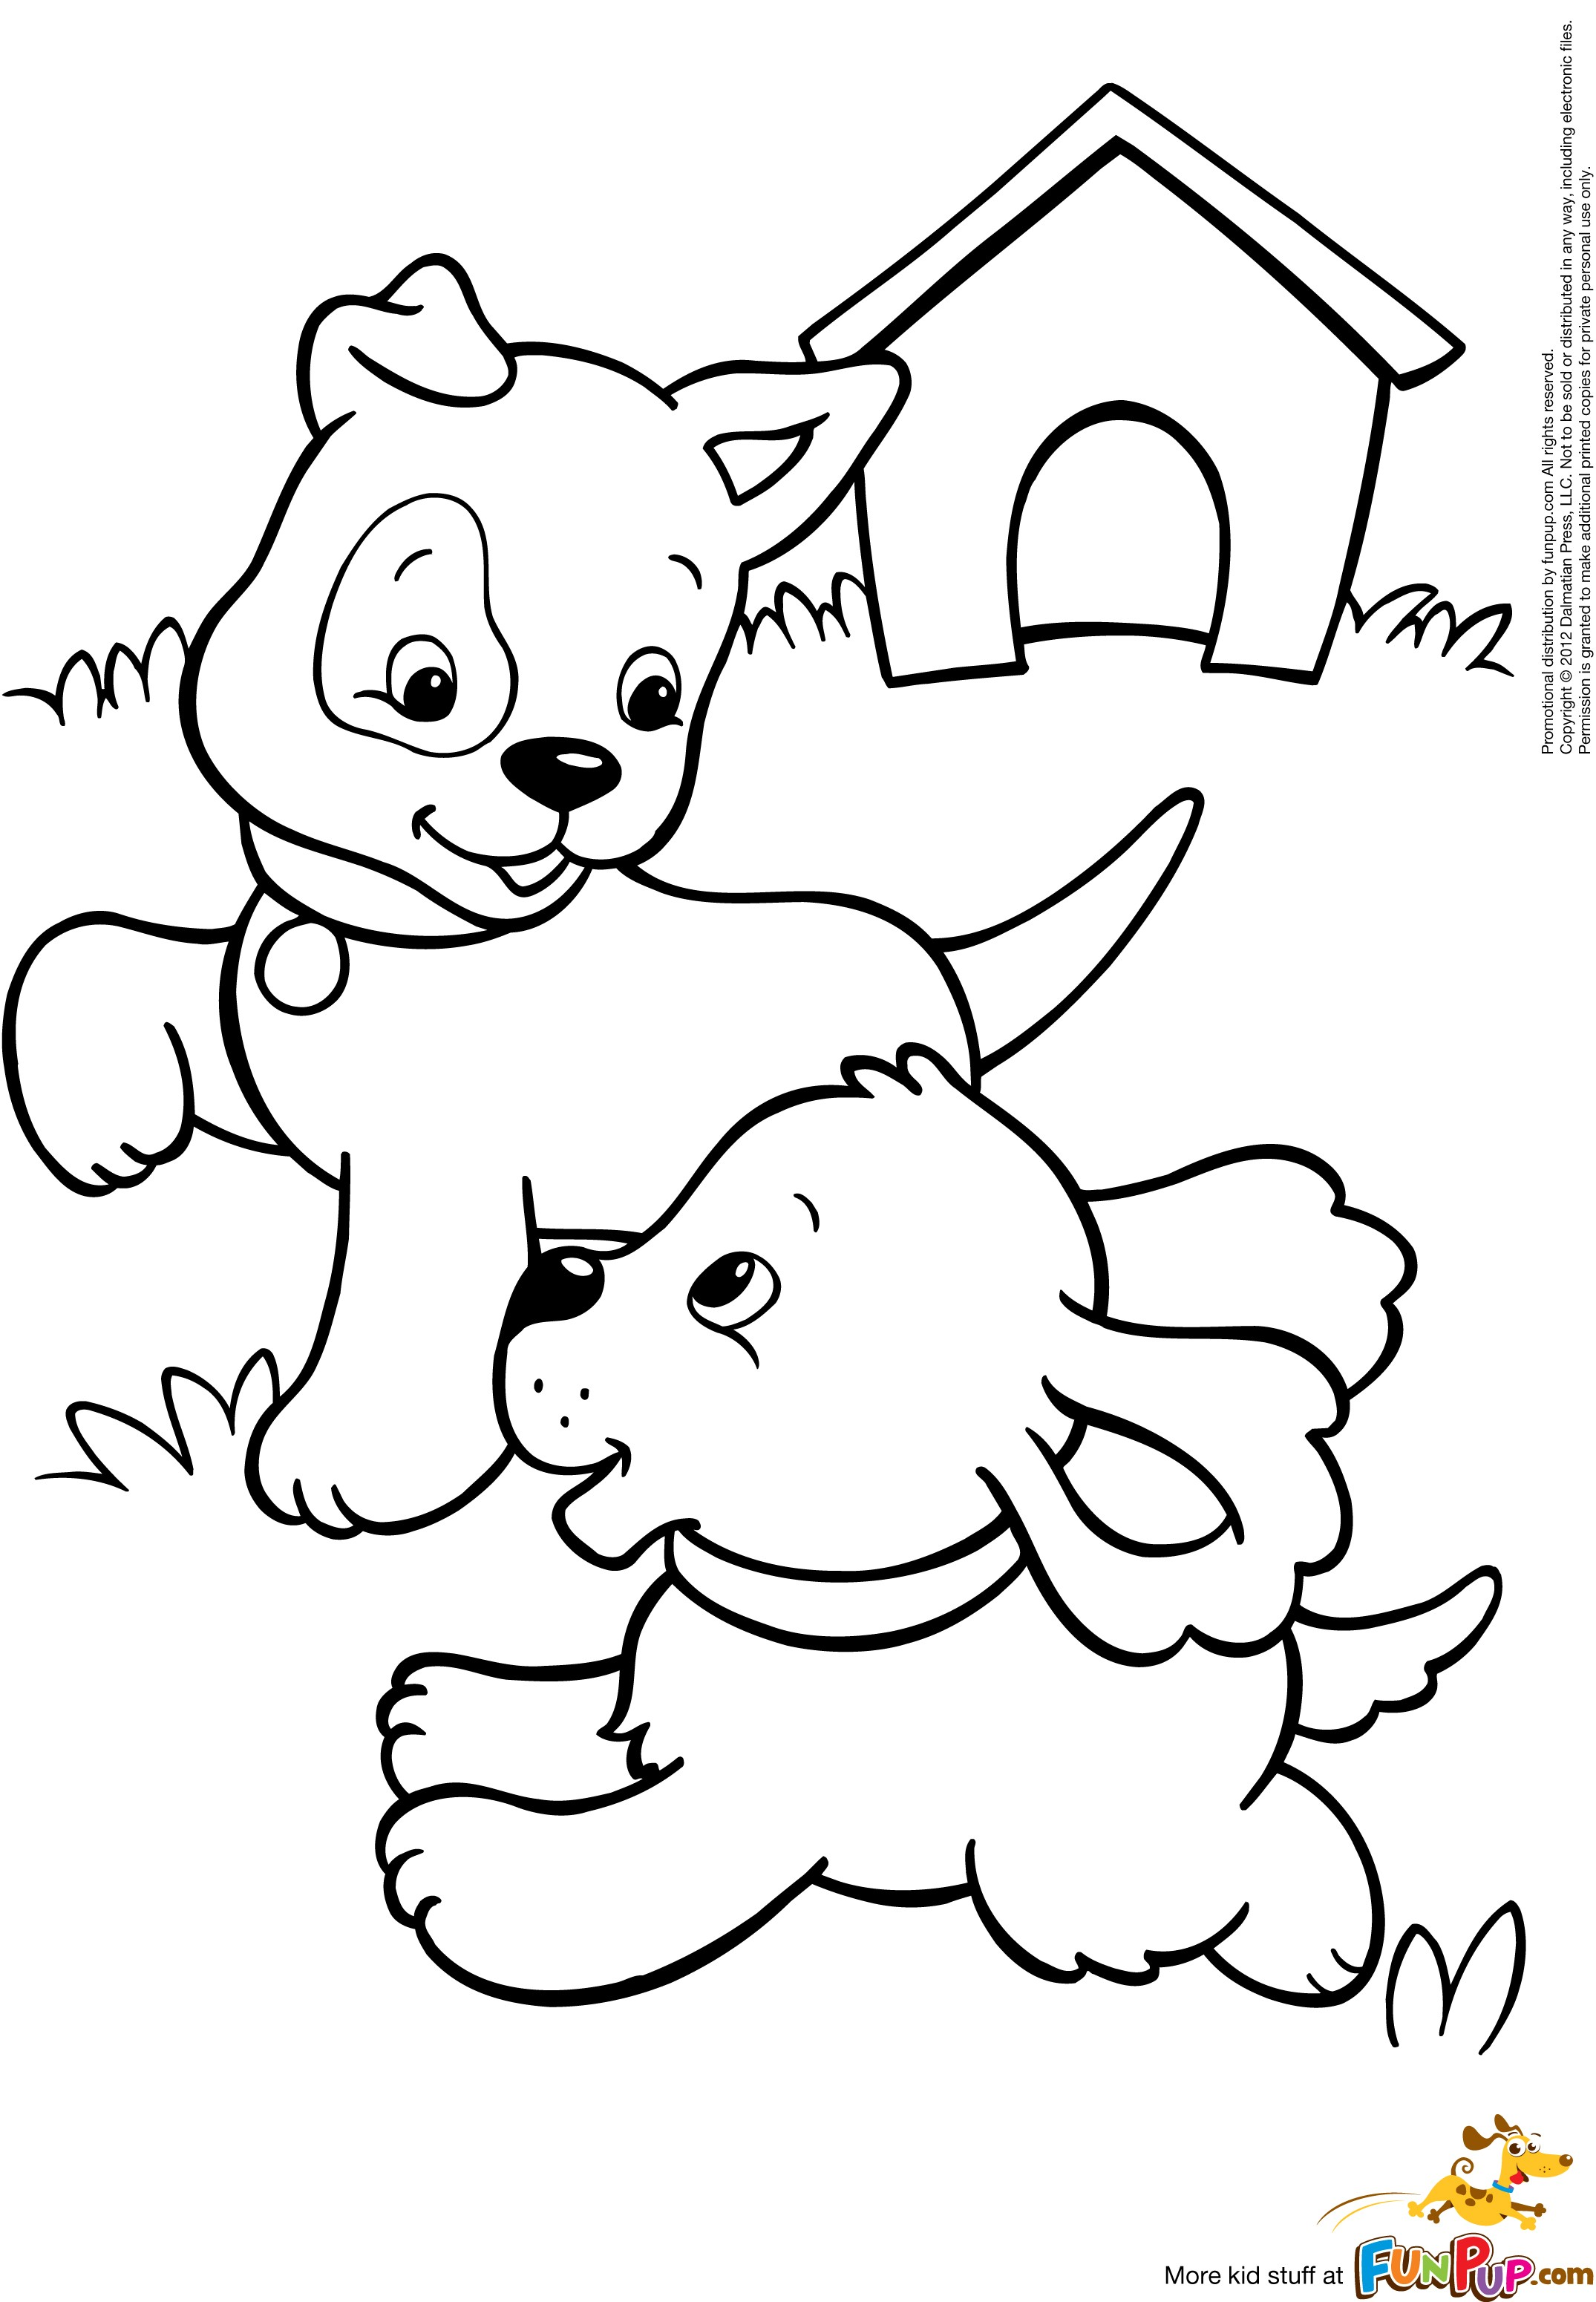 dog coloring picture dog coloring pages picture coloring dog